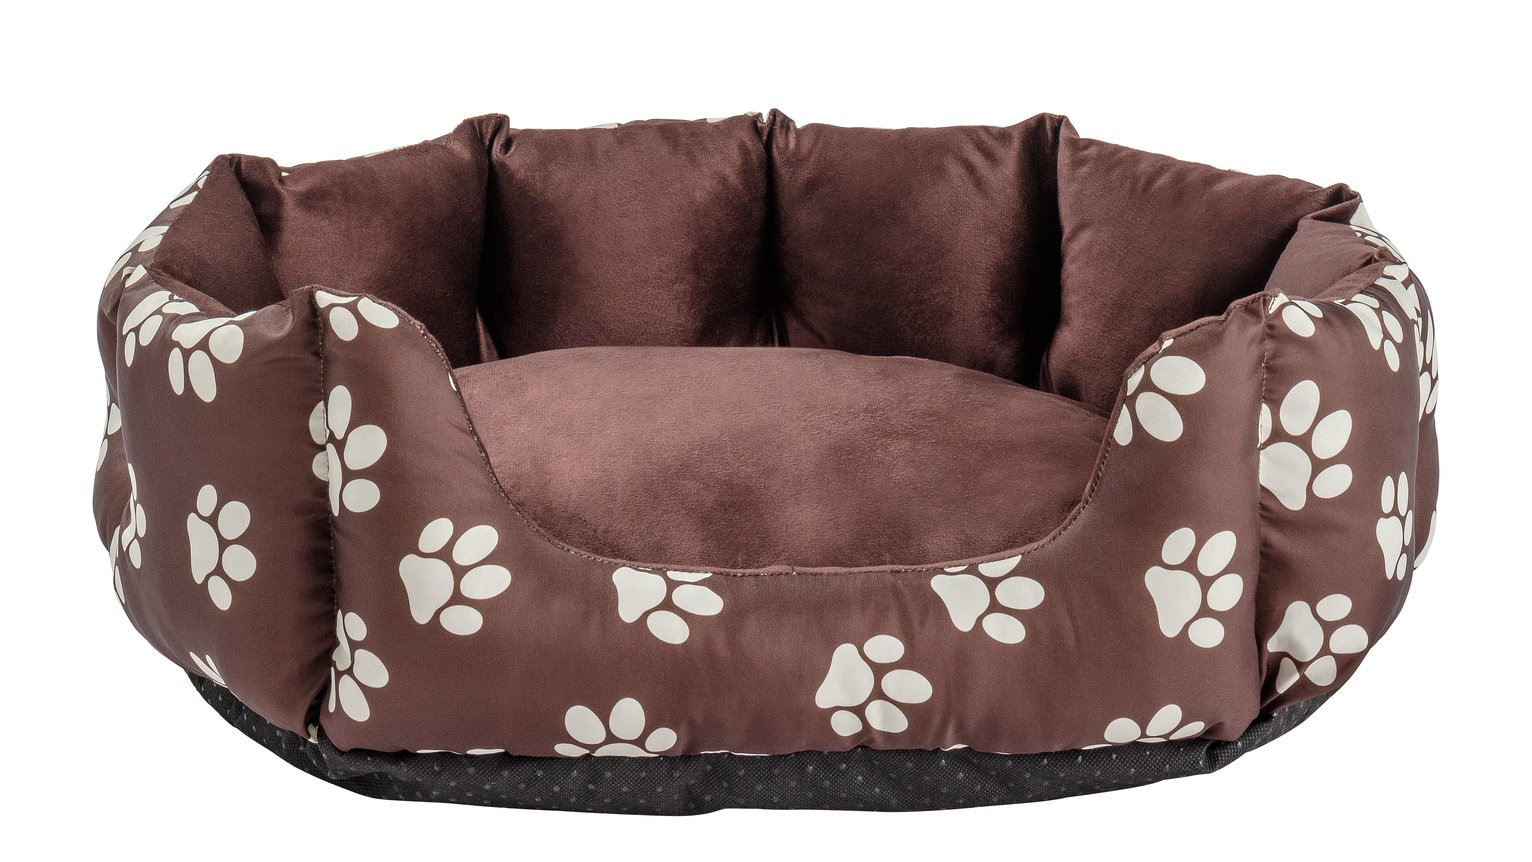 Paw Print Oval Pet Bed - Small